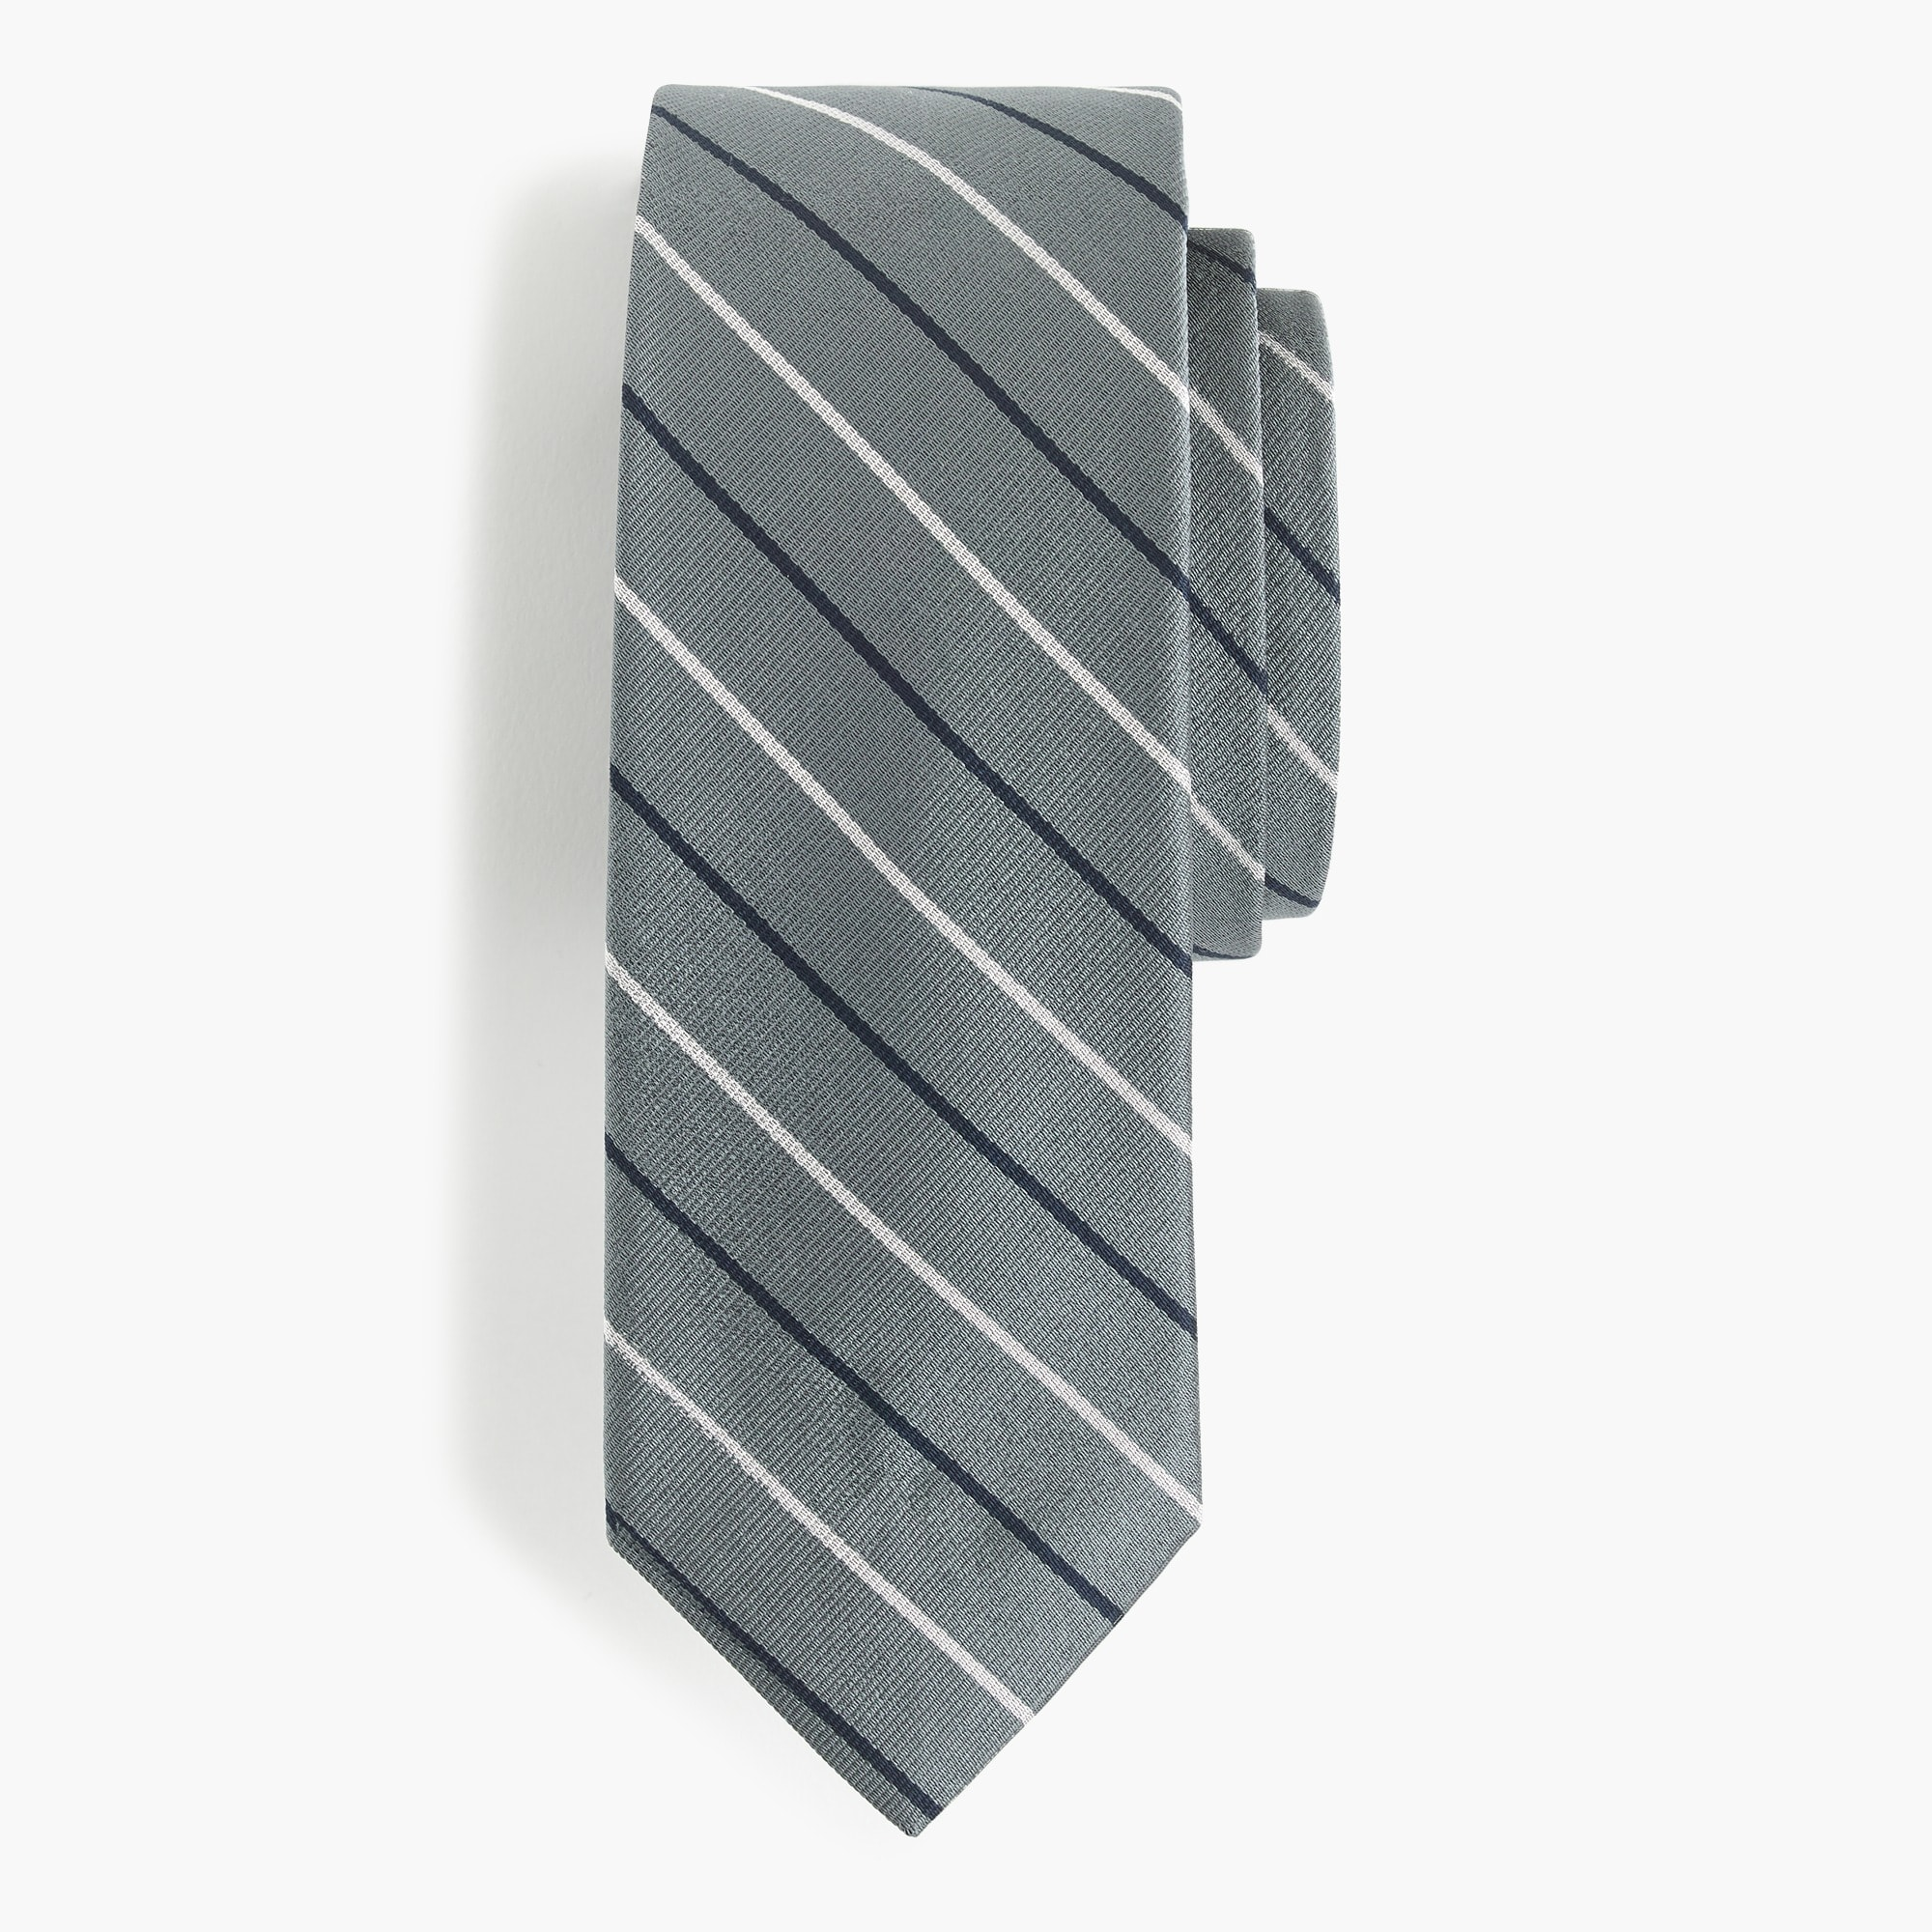 Image 1 for English silk tie in two-color stripe